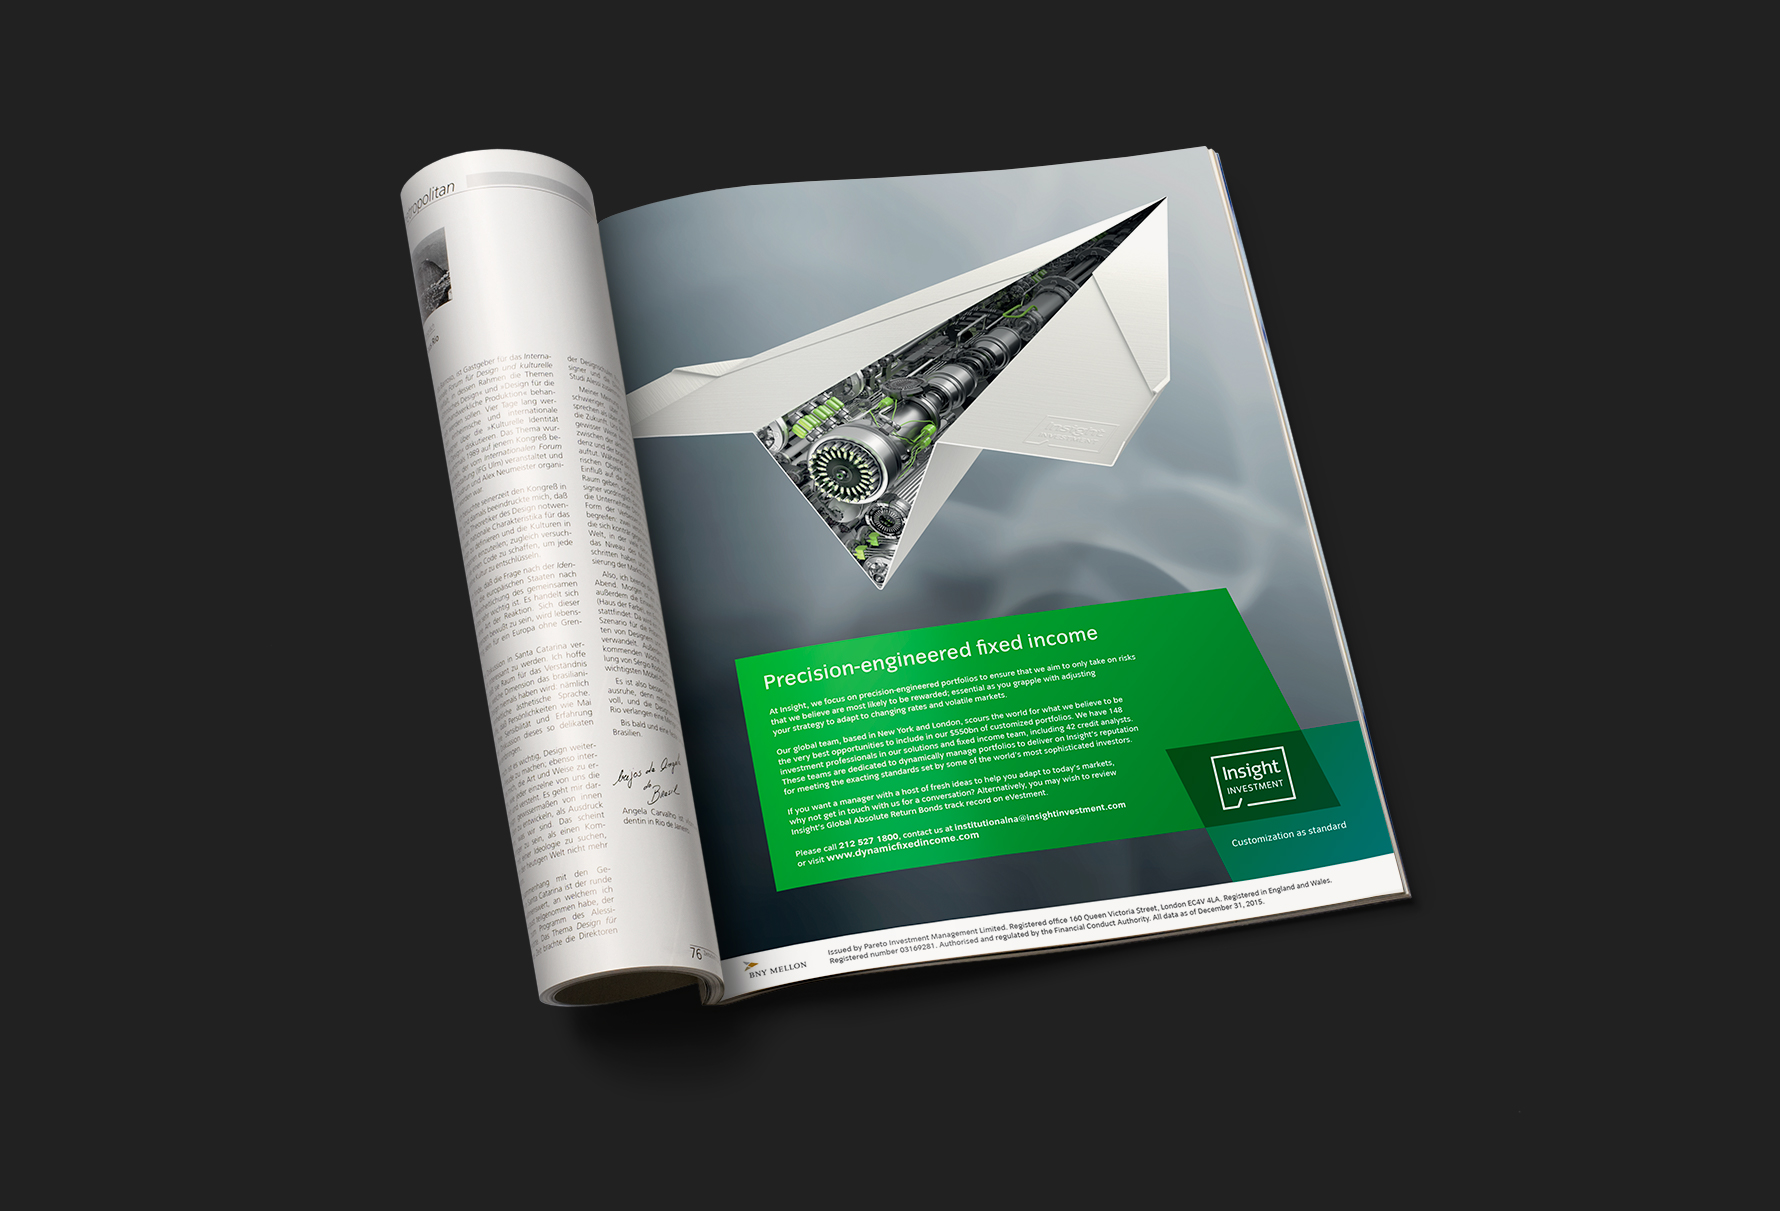 Insight investment paper plane campaign image 04